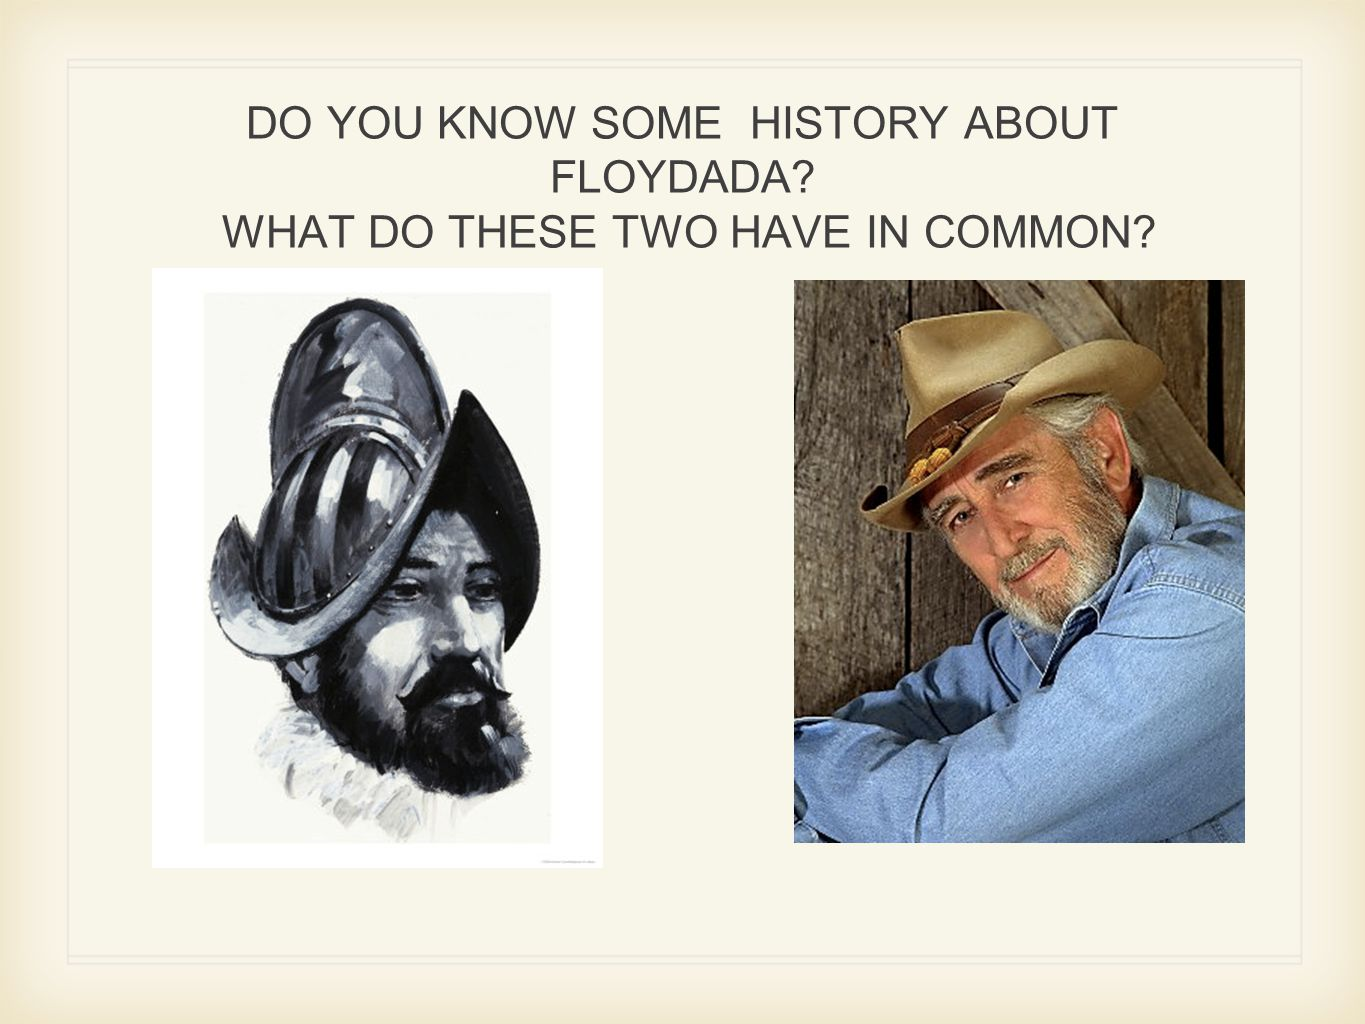 DO YOU KNOW SOME HISTORY ABOUT FLOYDADA WHAT DO THESE TWO HAVE IN COMMON F